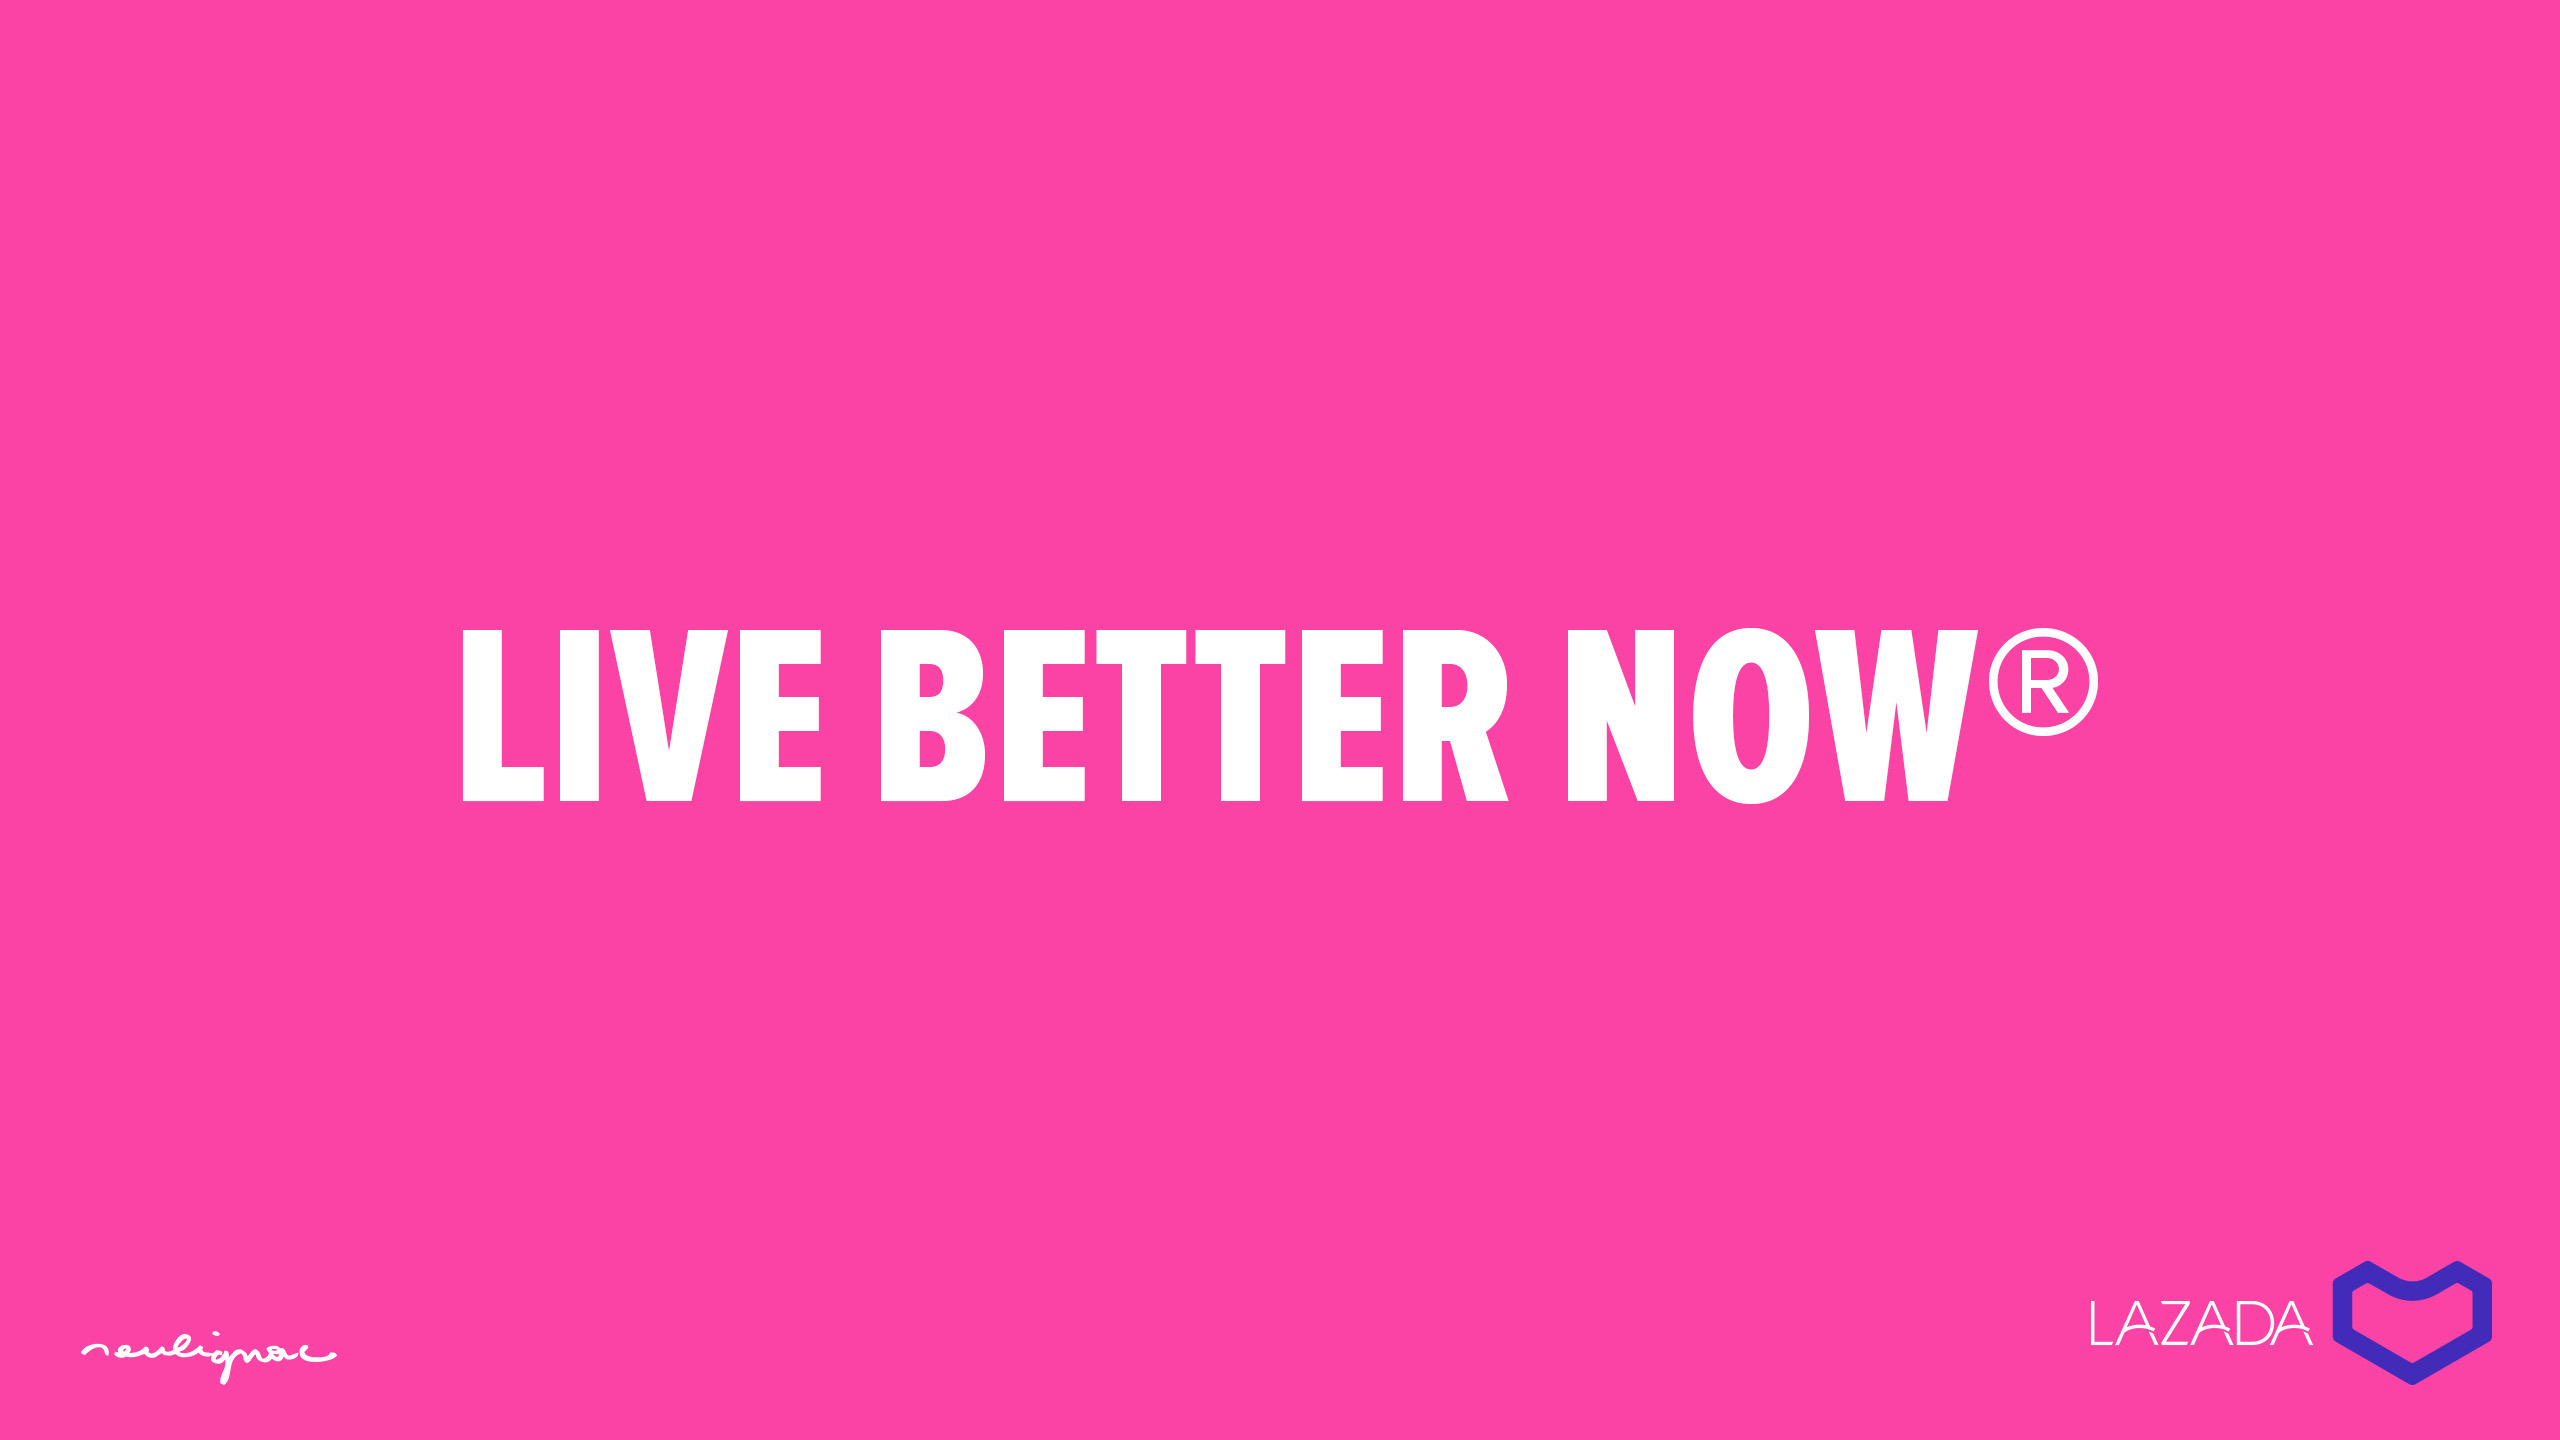 LAZADA Group - Digital Campaign - LIVE BETTER NOW - Francois Soulignac - Digital Creative & Art Director - MADJOR Labbrand Shanghai